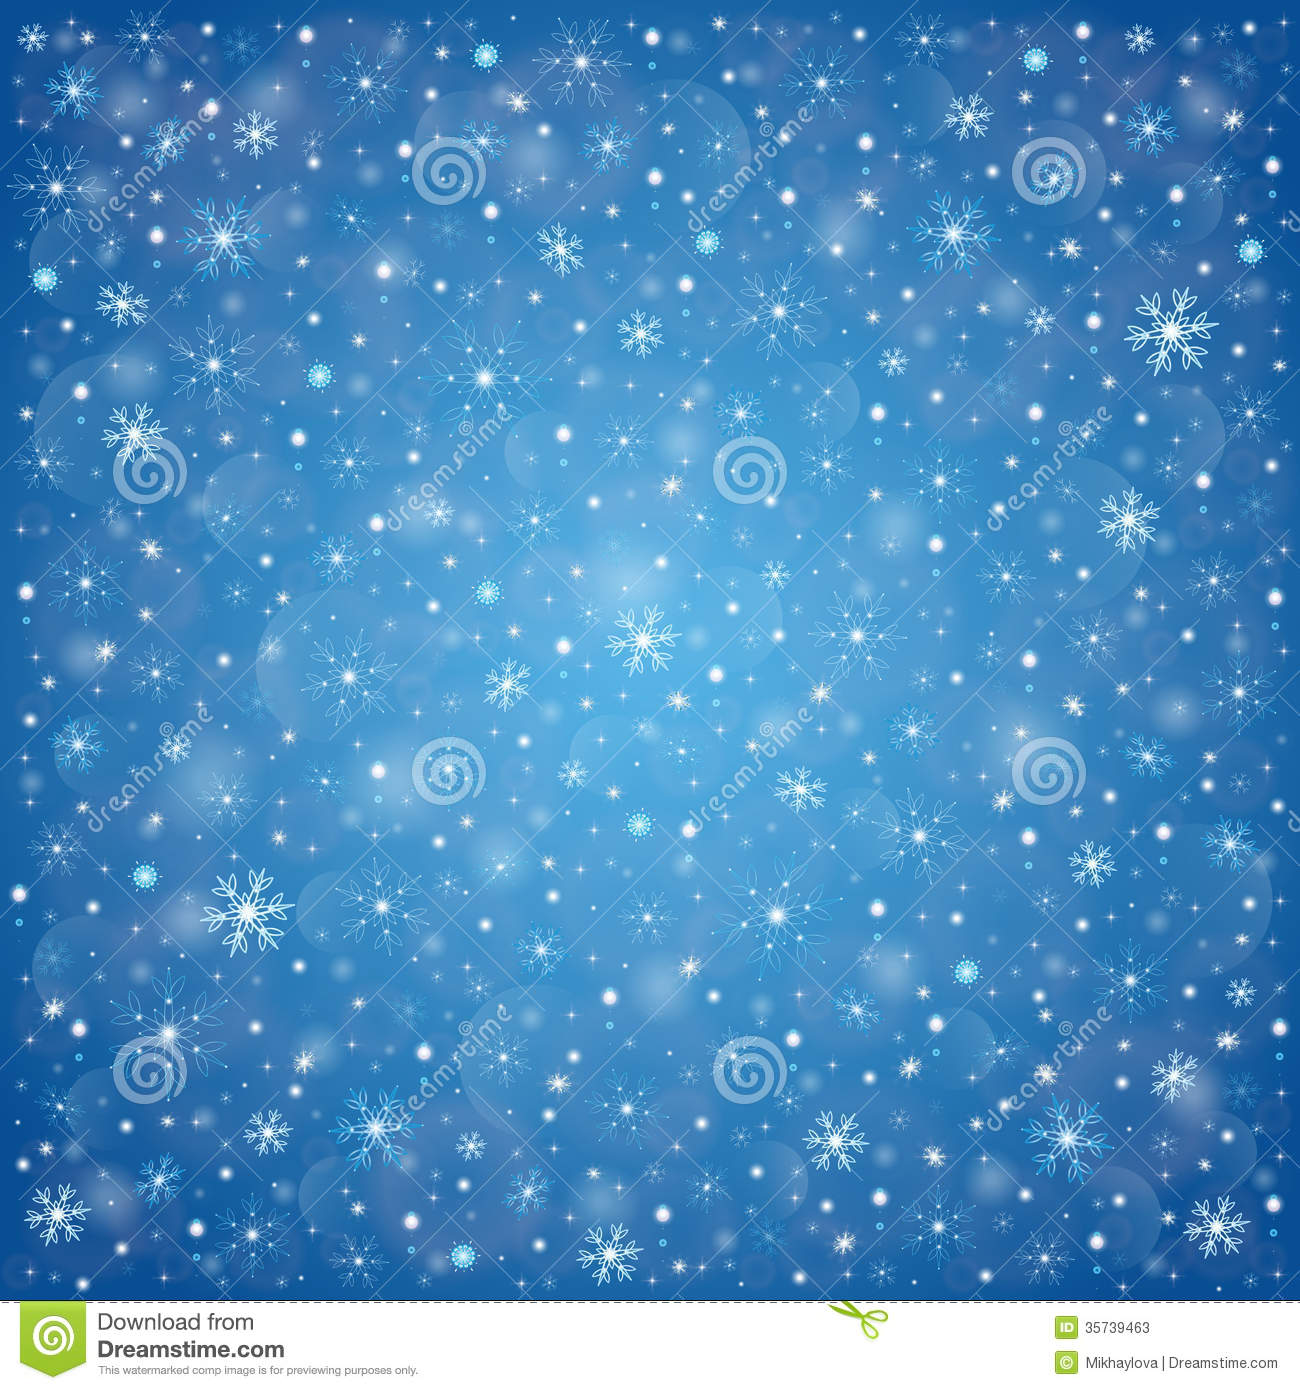 Christmas Snow Falling Wallpaper Winter Frosty Snow Background Stock Vector Illustration